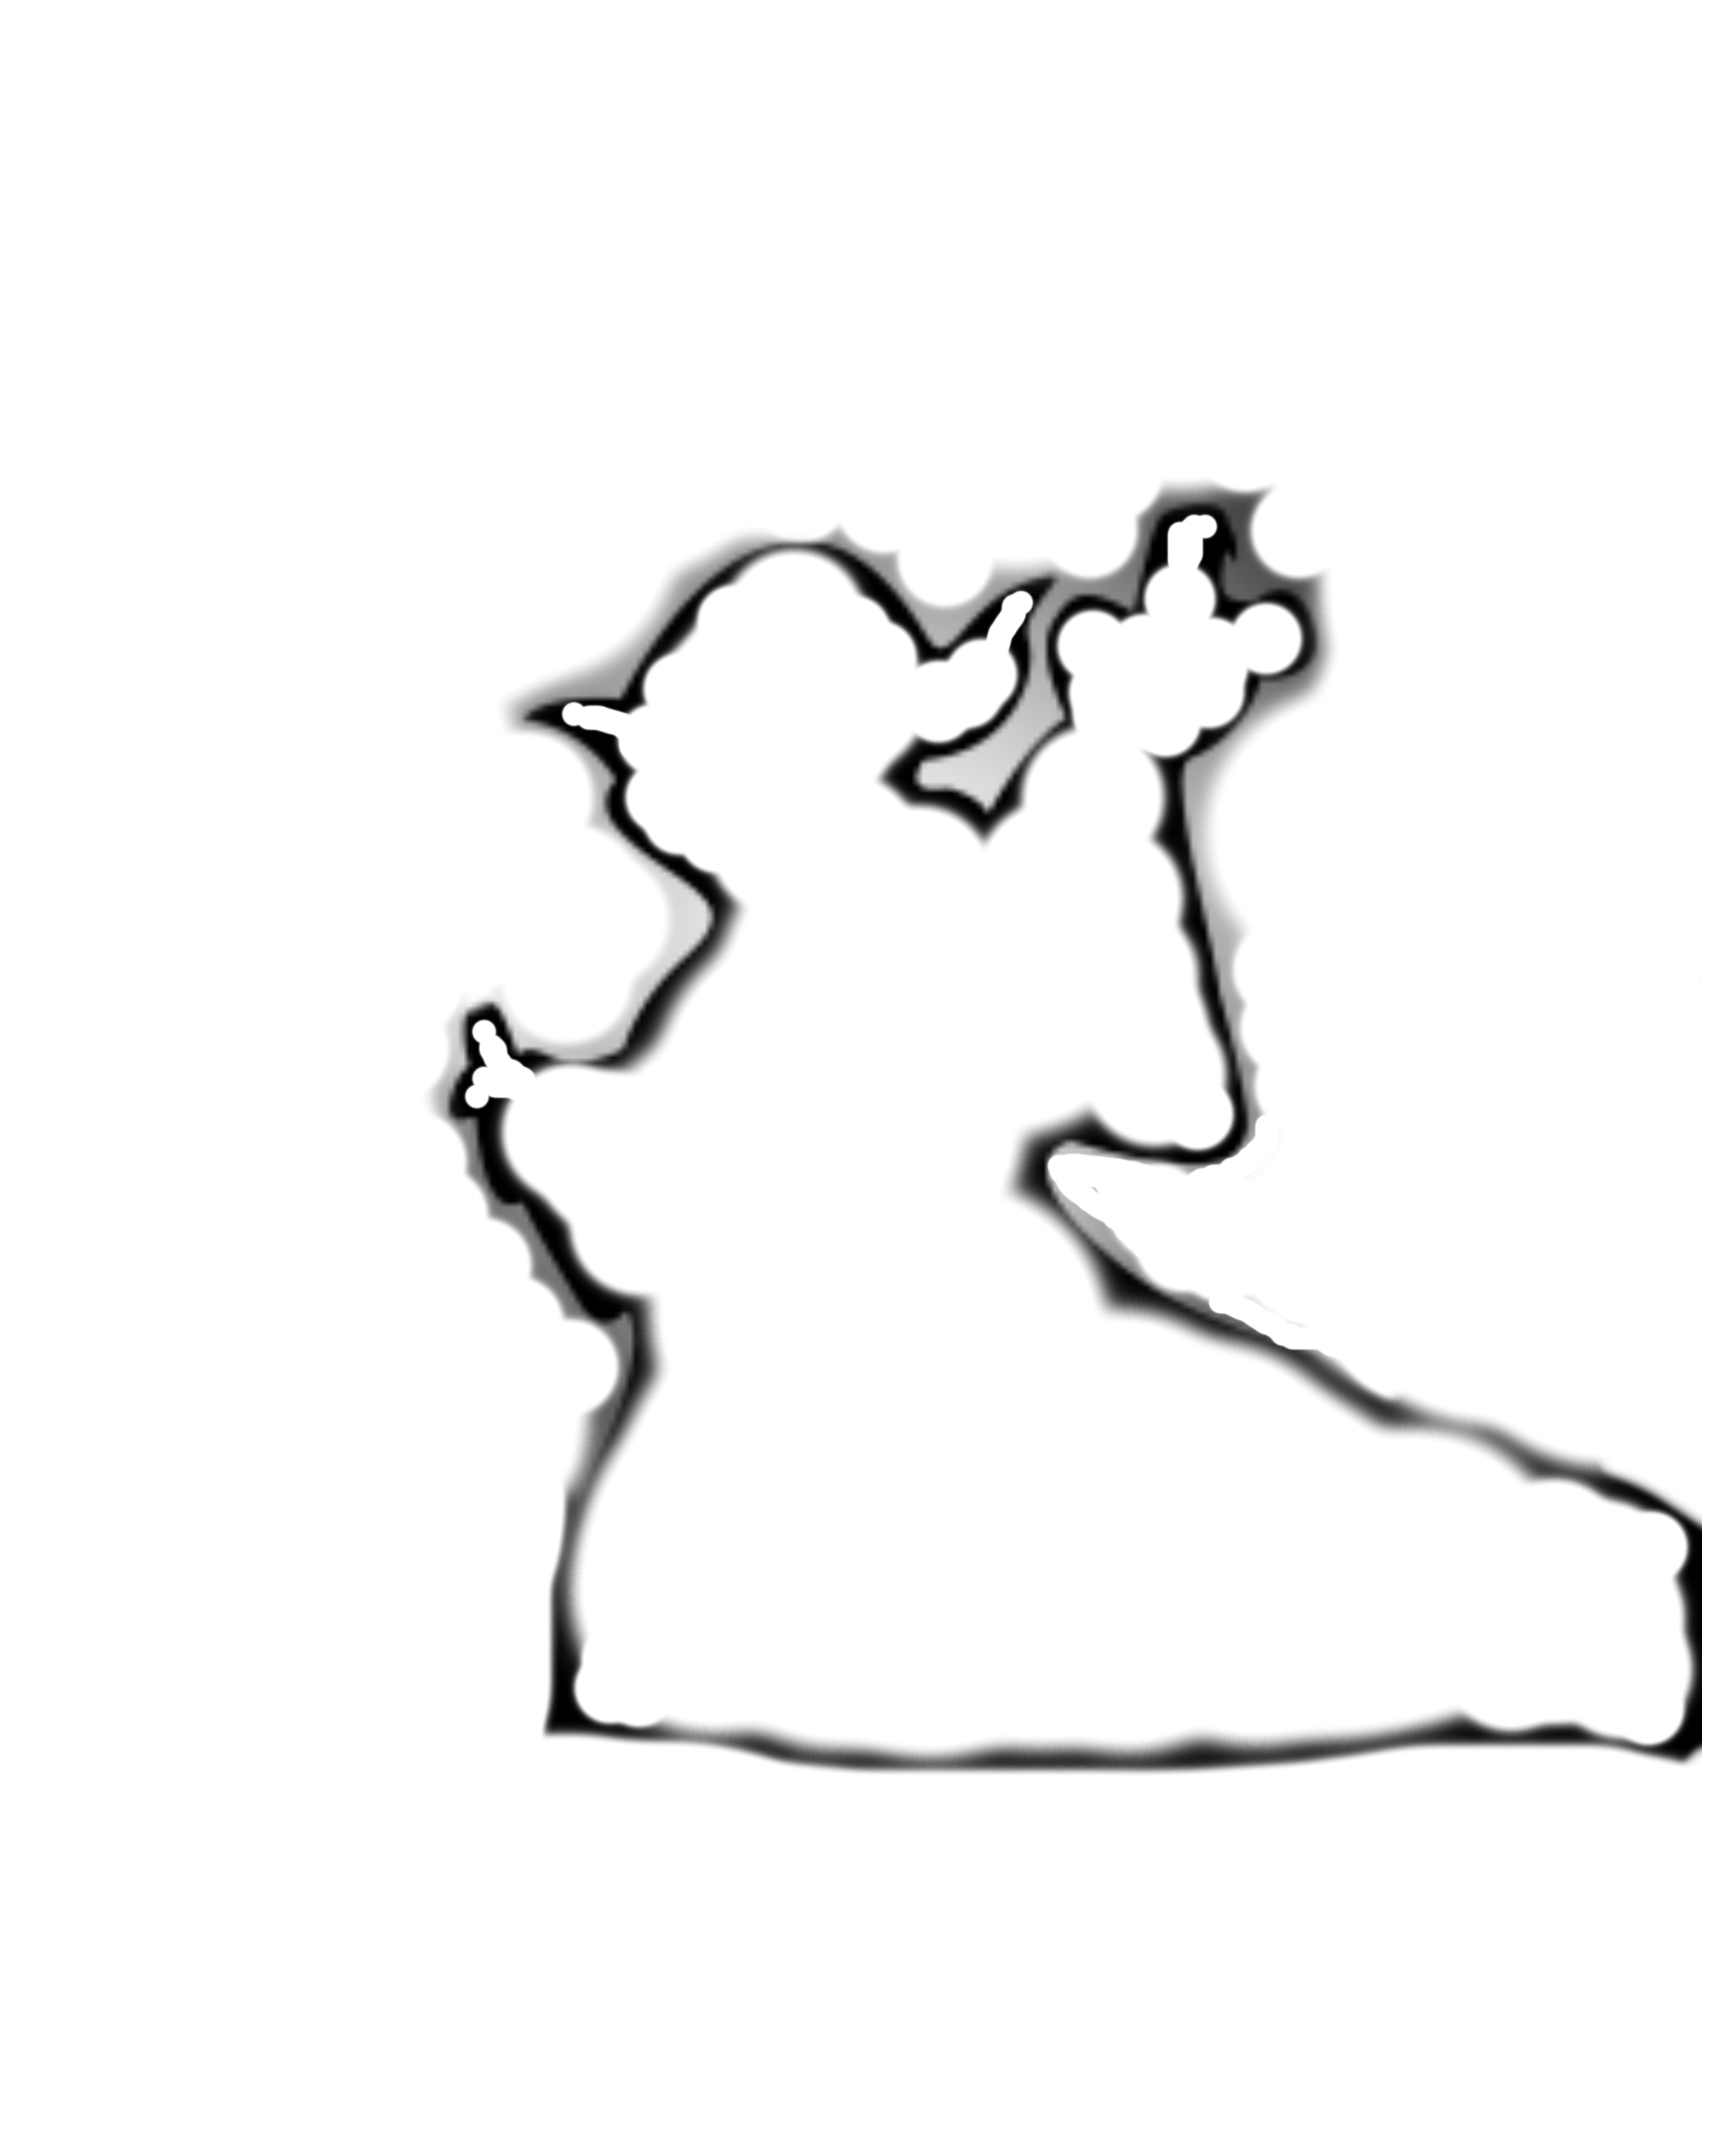 yoda outline drawing yoda outline star wars clipart free outline yoda